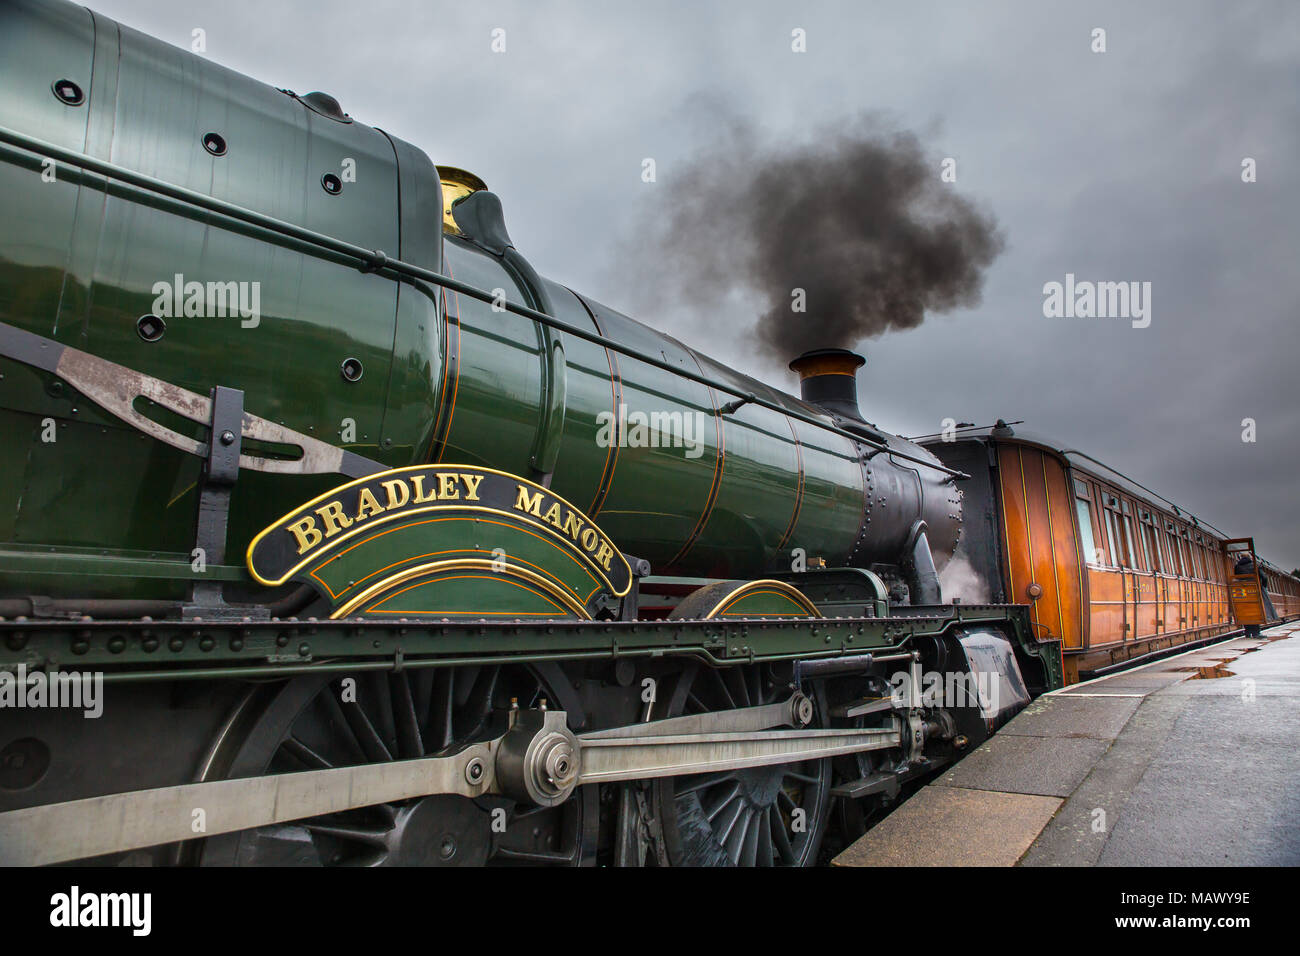 Severn Valley Railway steam locomotive Bradley Manor No.7802 with its rake  of varnished teak carriages awaiting departure at Kidderminster station.